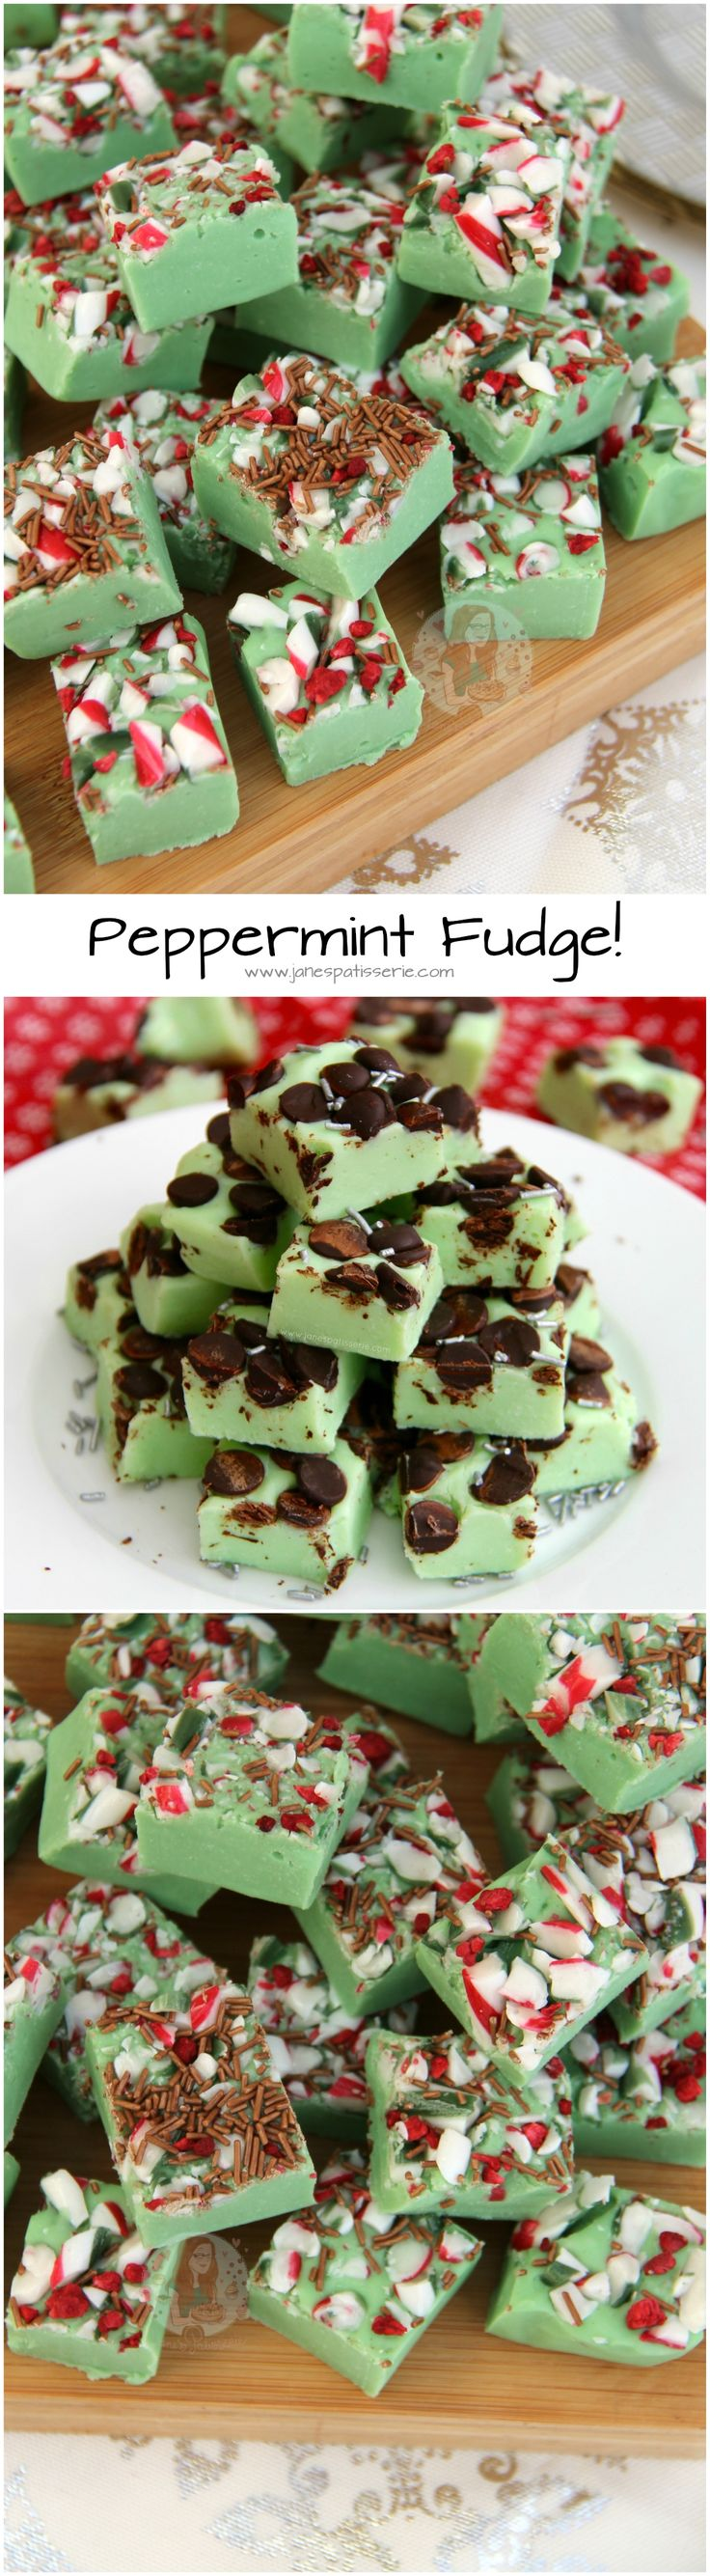 Peppermint Fudge! ❤️ Deliciously easy to make Fudge that is brimming with the Scrumptious Peppermint Flavour - dotted with Candy Canes, Dark Chocolate Chips, Sprinkles and more!